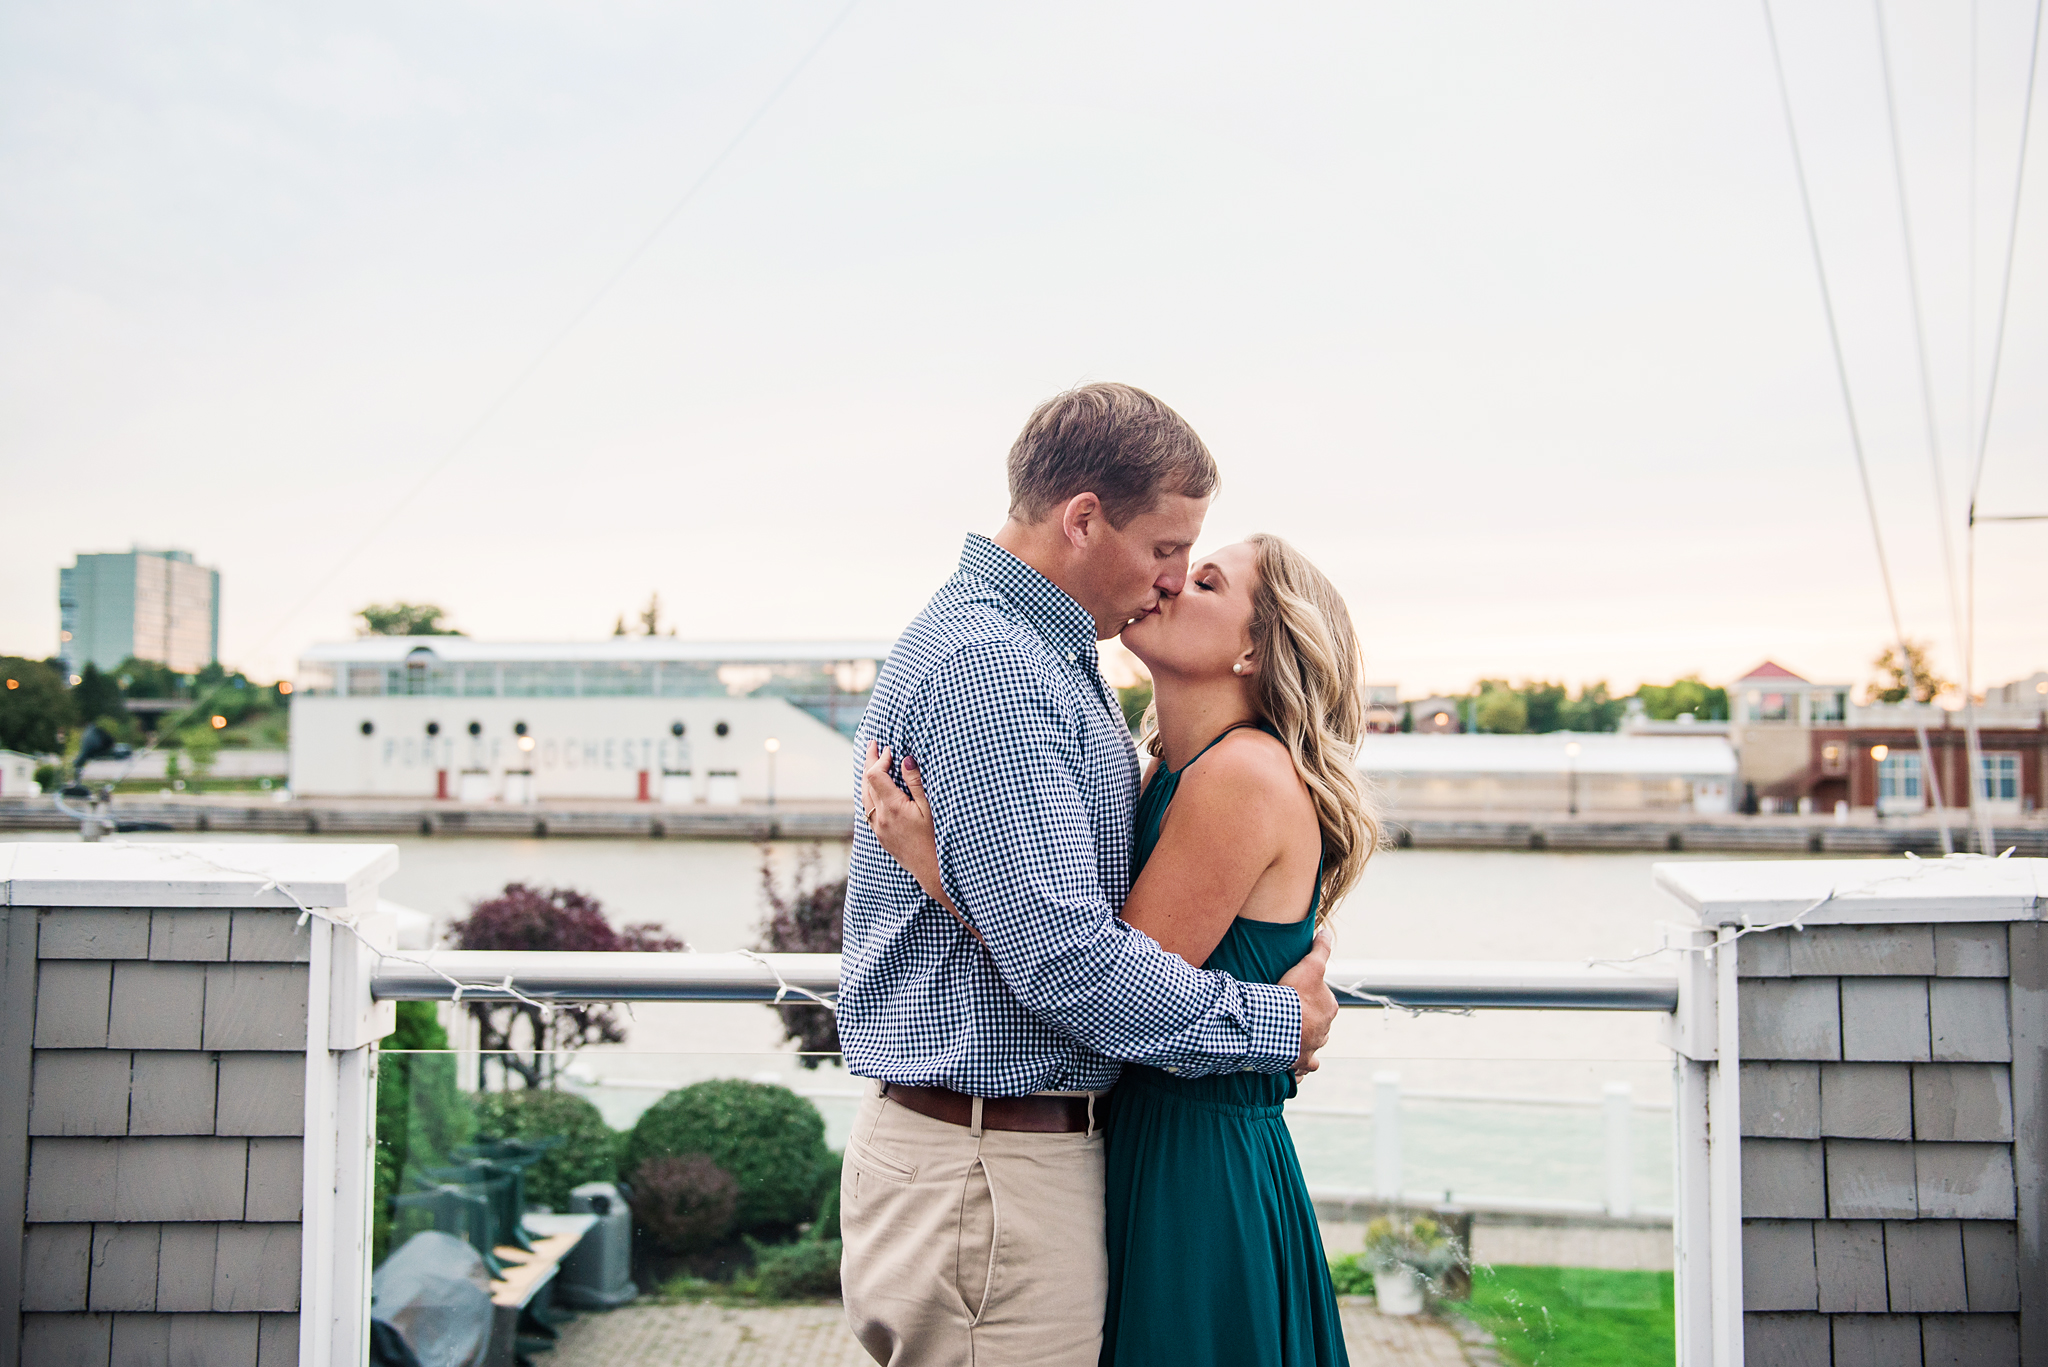 George_Eastman_House_Rochester_Yacht_Club_Rochester_Engagement_Session_JILL_STUDIO_Rochester_NY_Photographer_DSC_8248.jpg